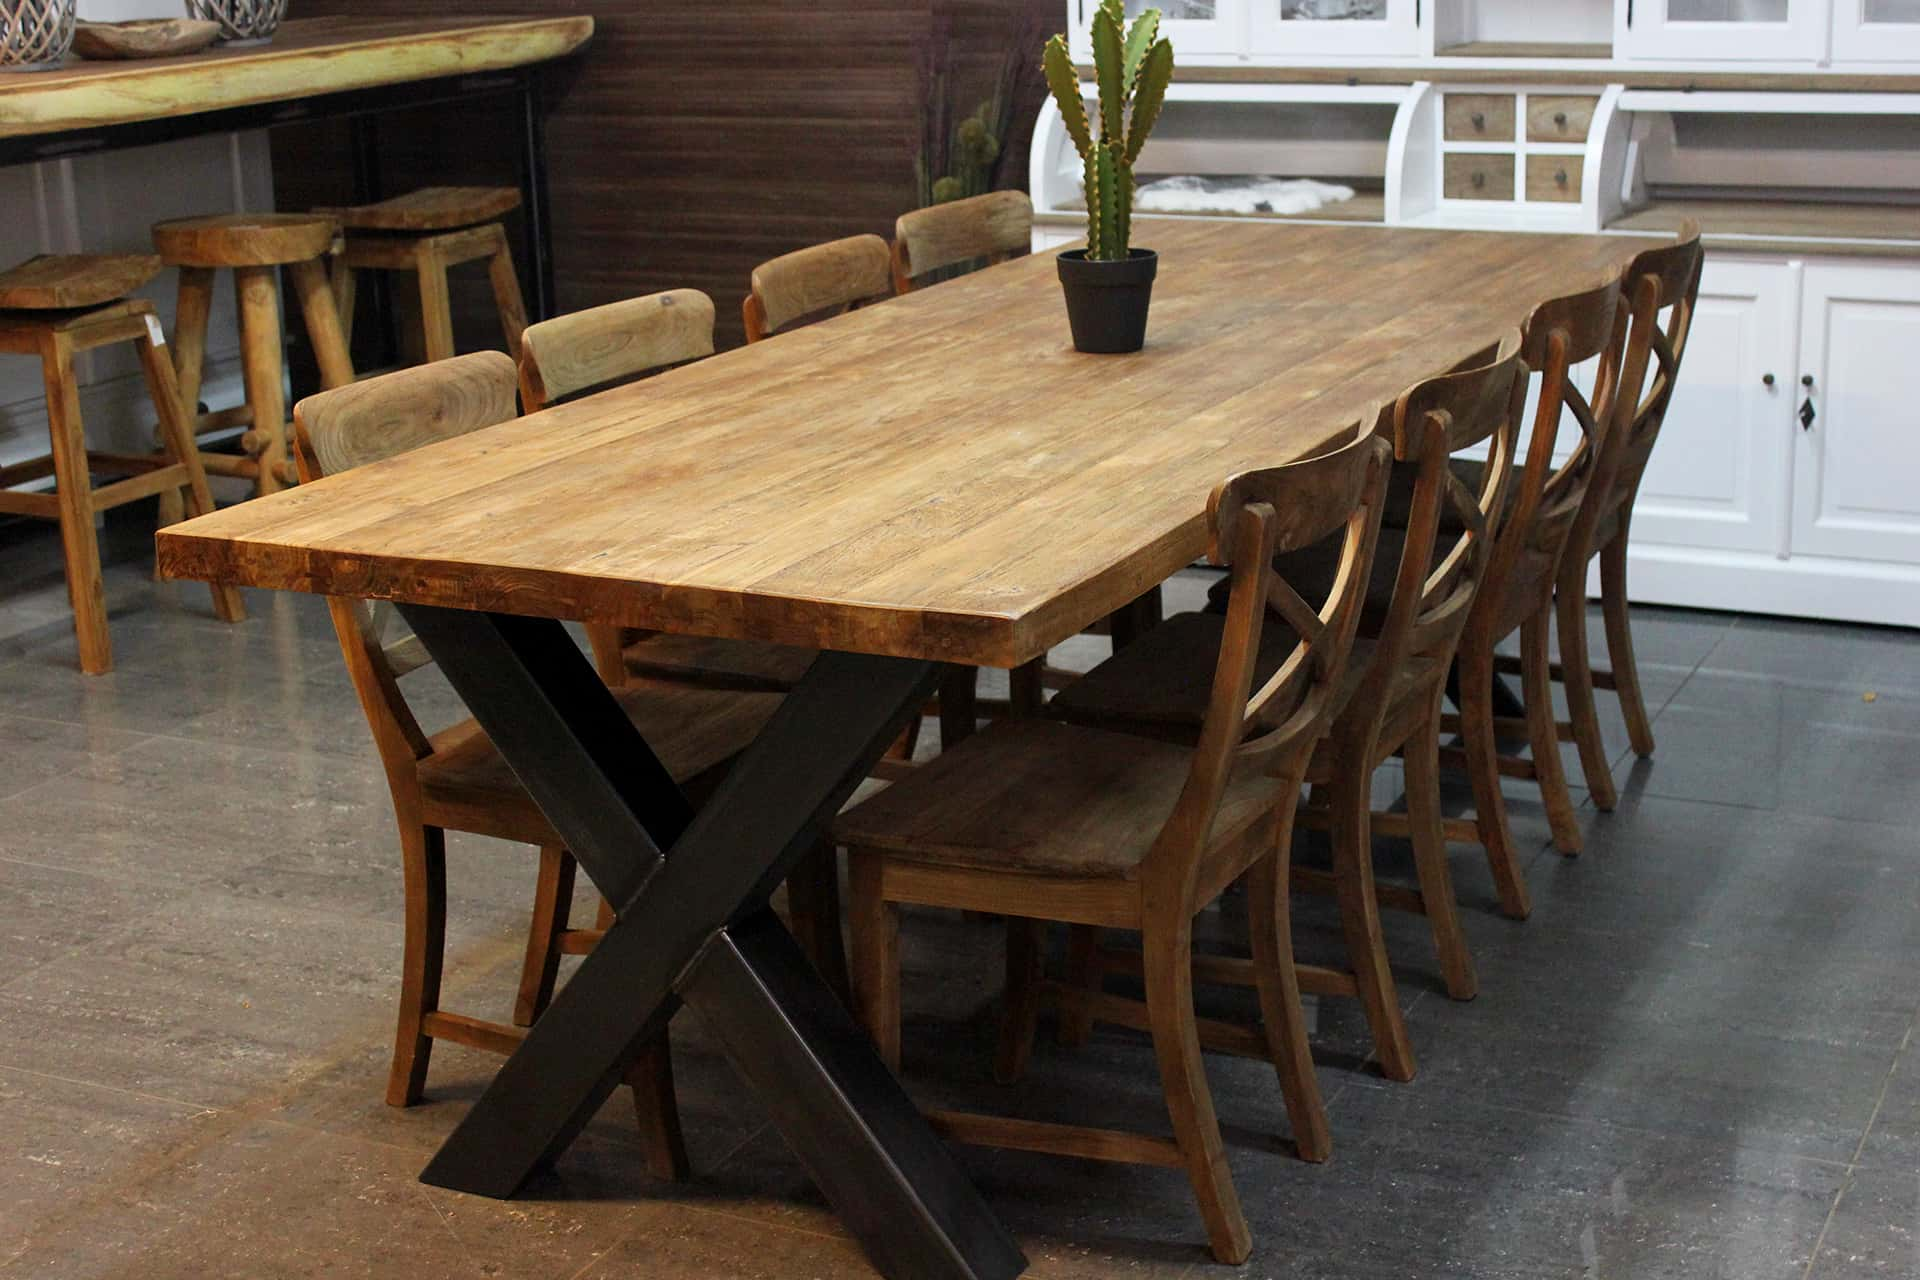 Teak Besi T260XL Old | wooden design table teak with metal leg. Dining table with thick solid old teak top. Quality from Indonesia - TEAK2.